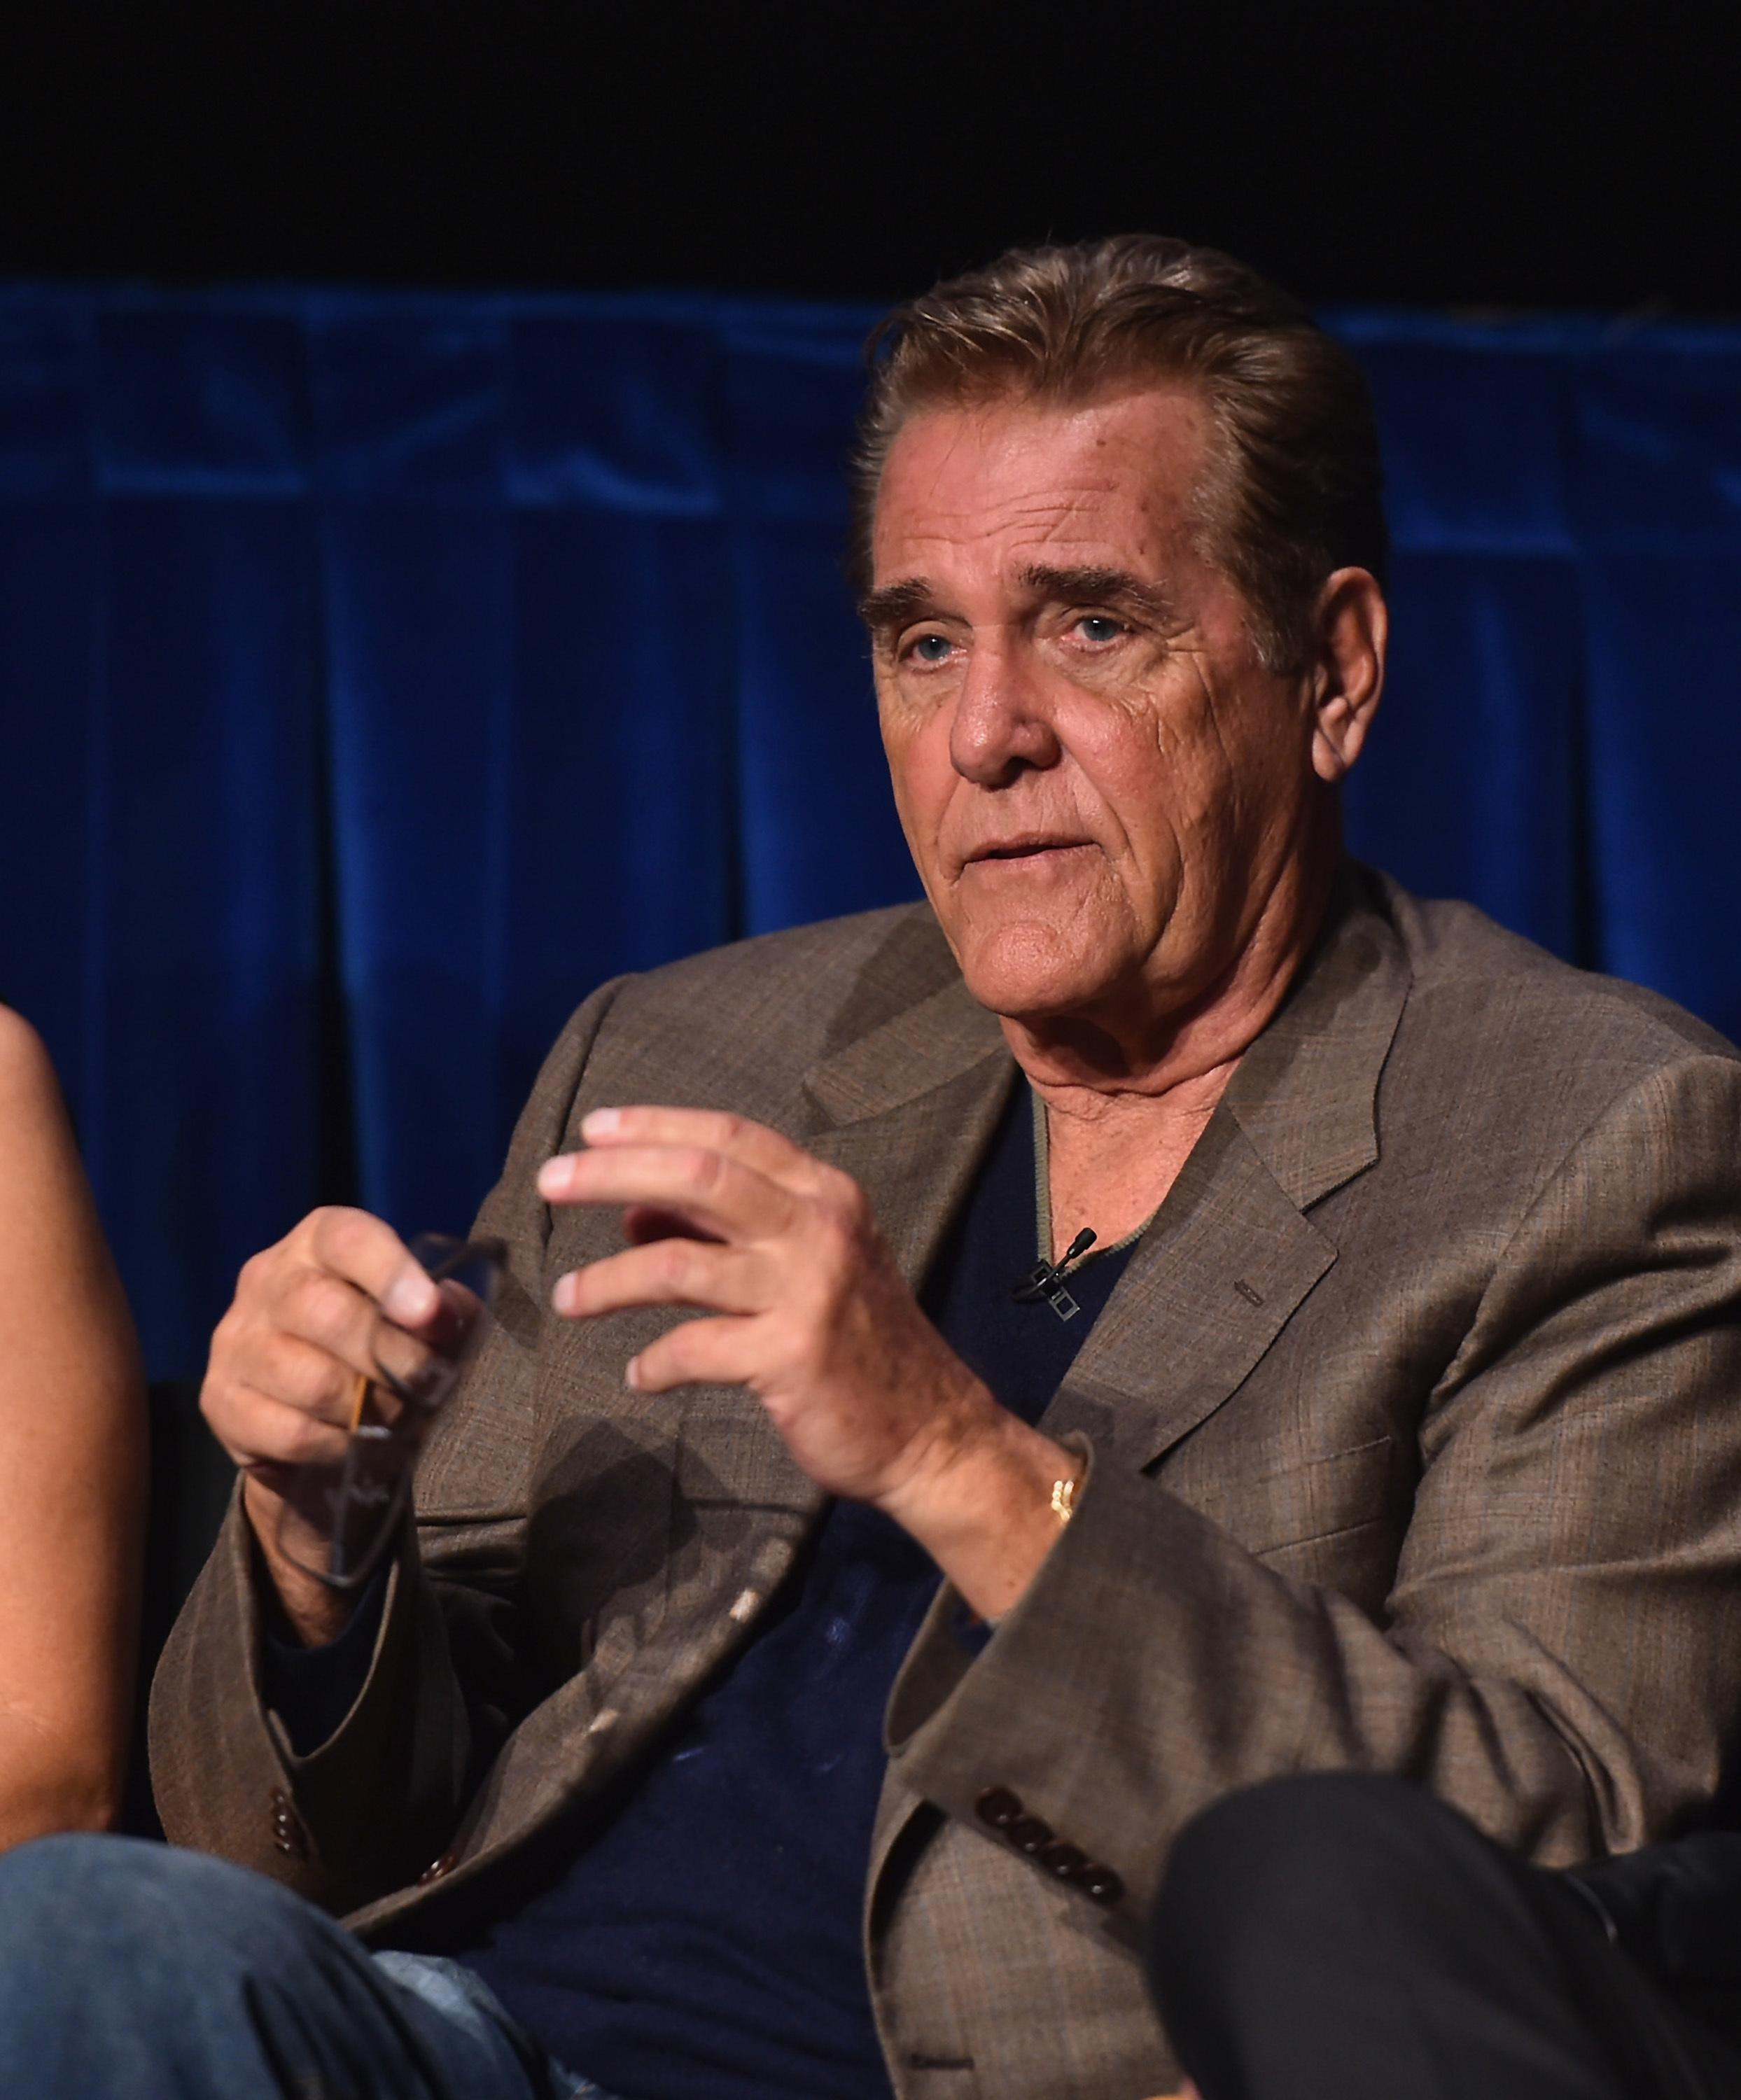 Chuck Woolery's son has Covid-19, spokesperson confirms